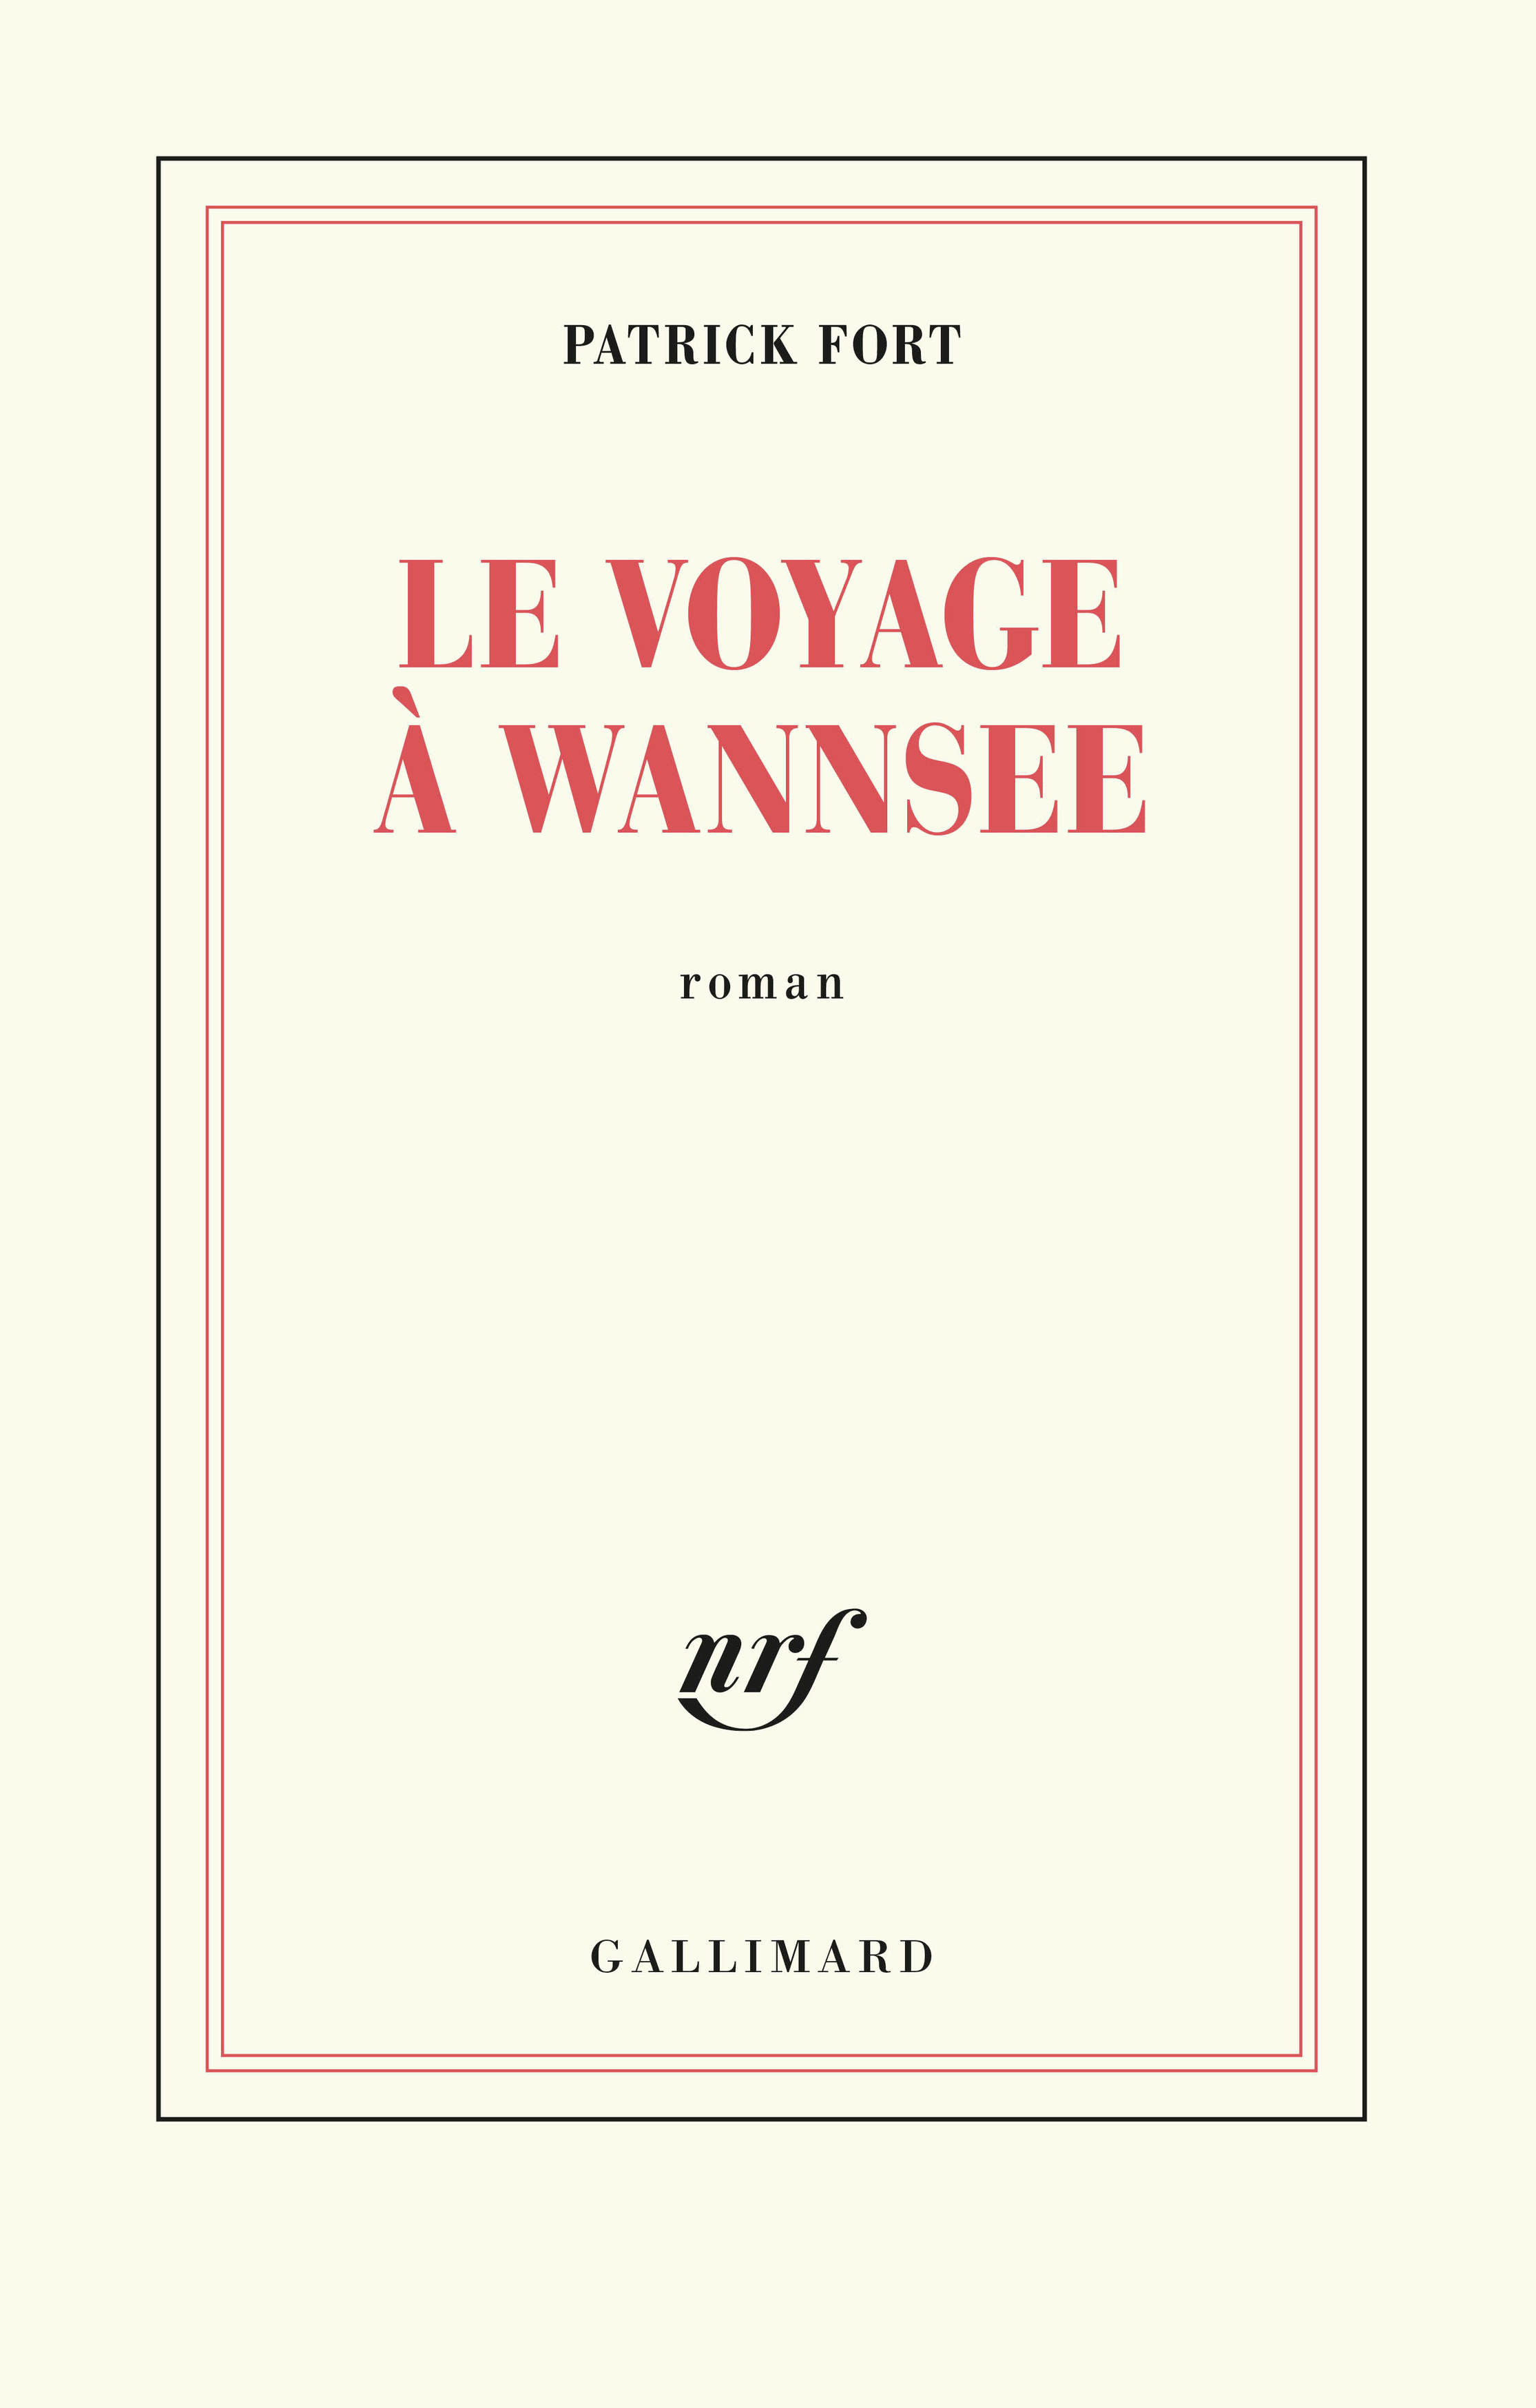 Le voyage à Wannsee1